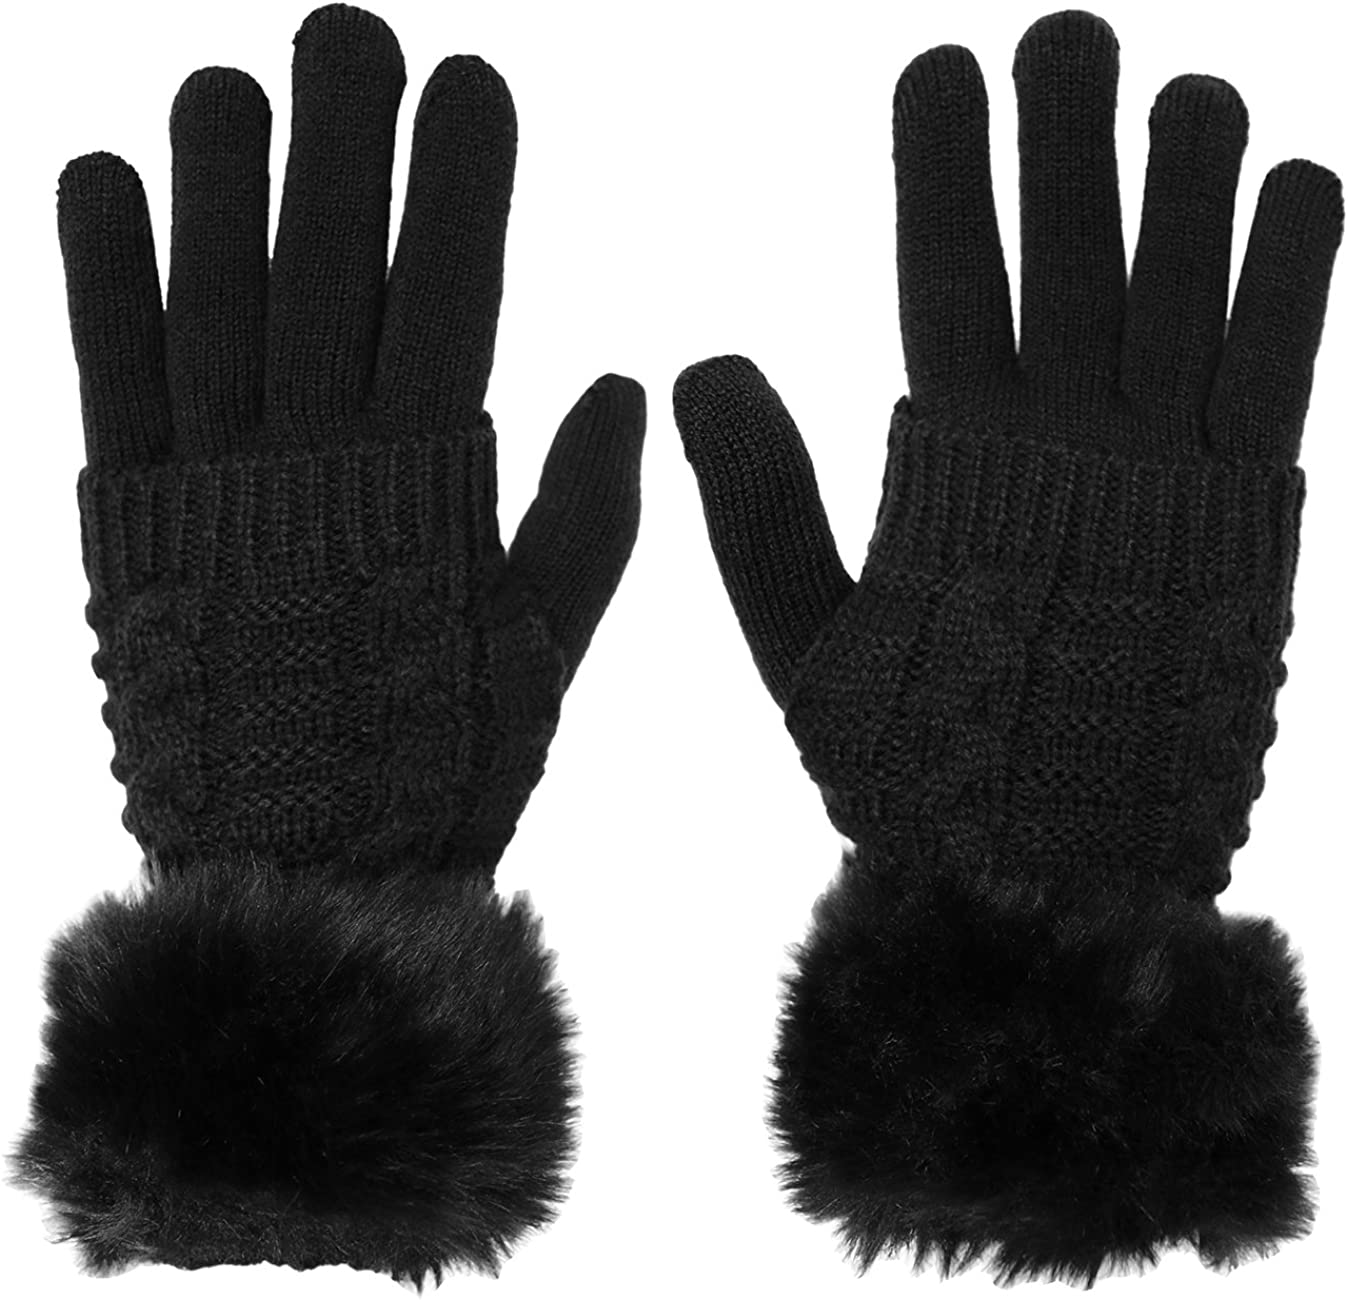 KMystic Women's Knit Gloves and Fur Hand Warmer Set